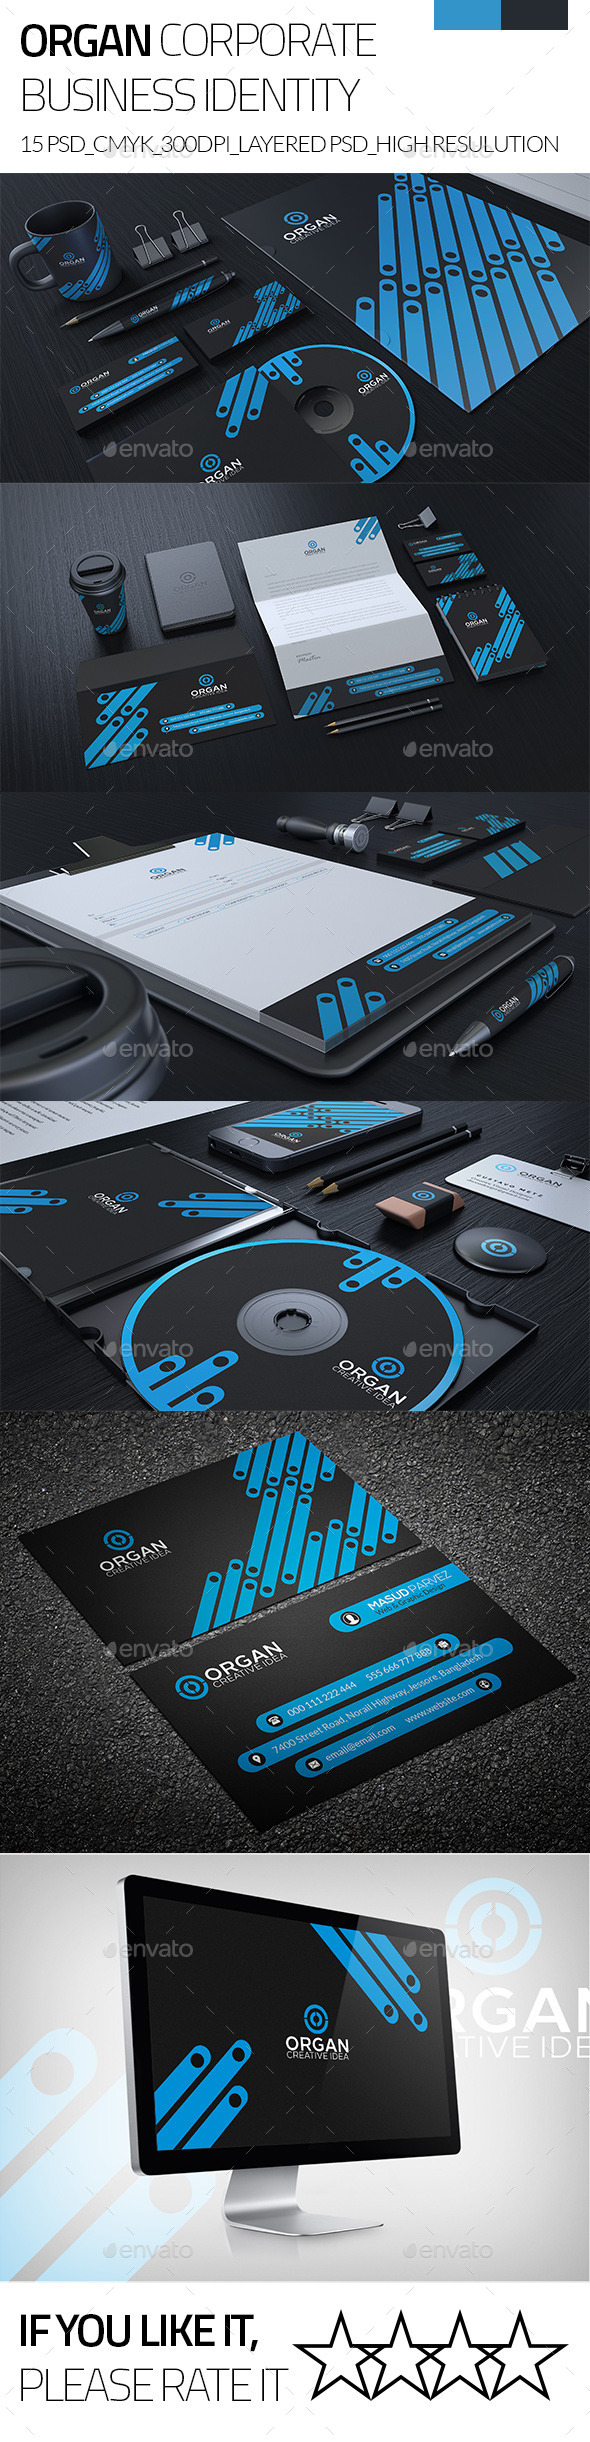 Organ Corporate Business Stationary Identity - Stationery Print Templates